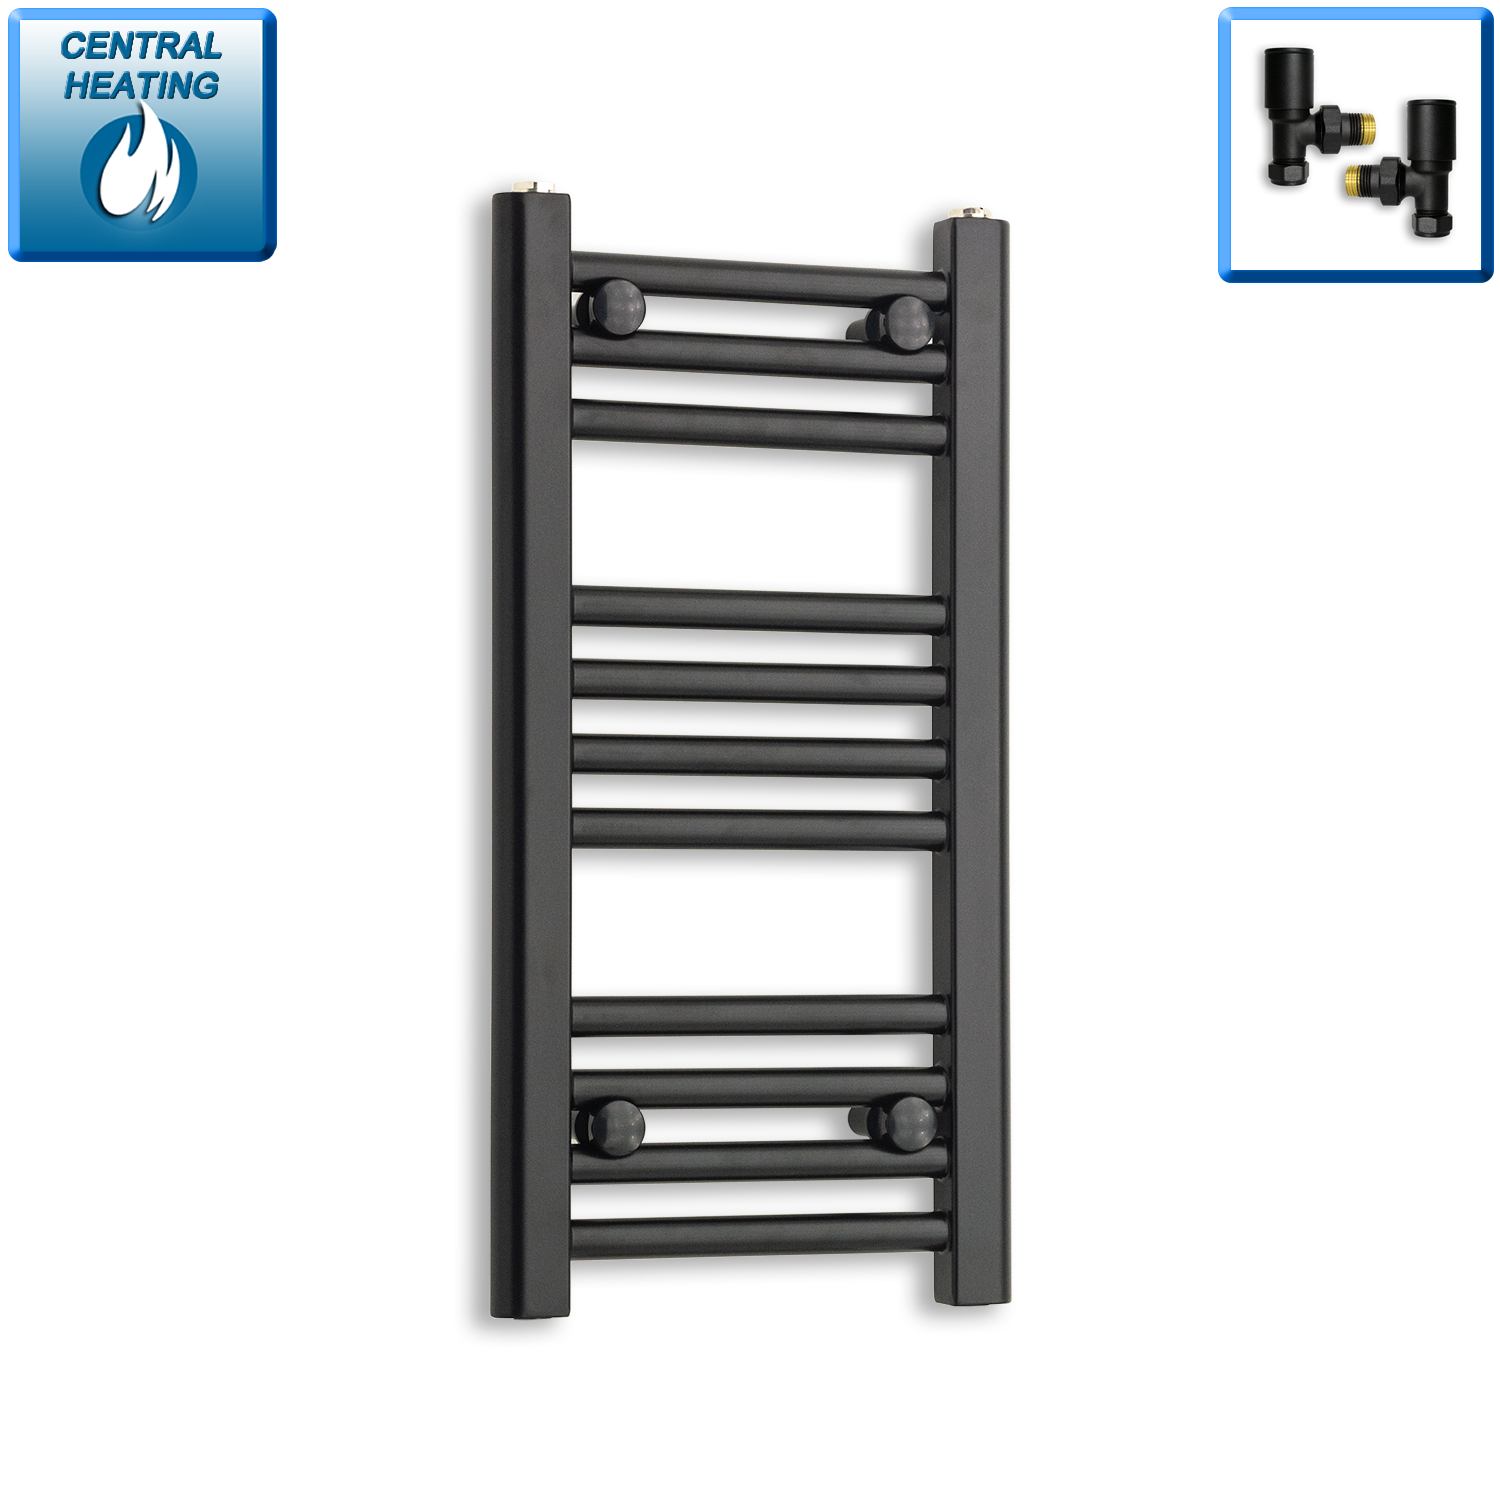 300mm Wide 600mm High Flat Black Heated Towel Rail Radiator,With Angled Valve